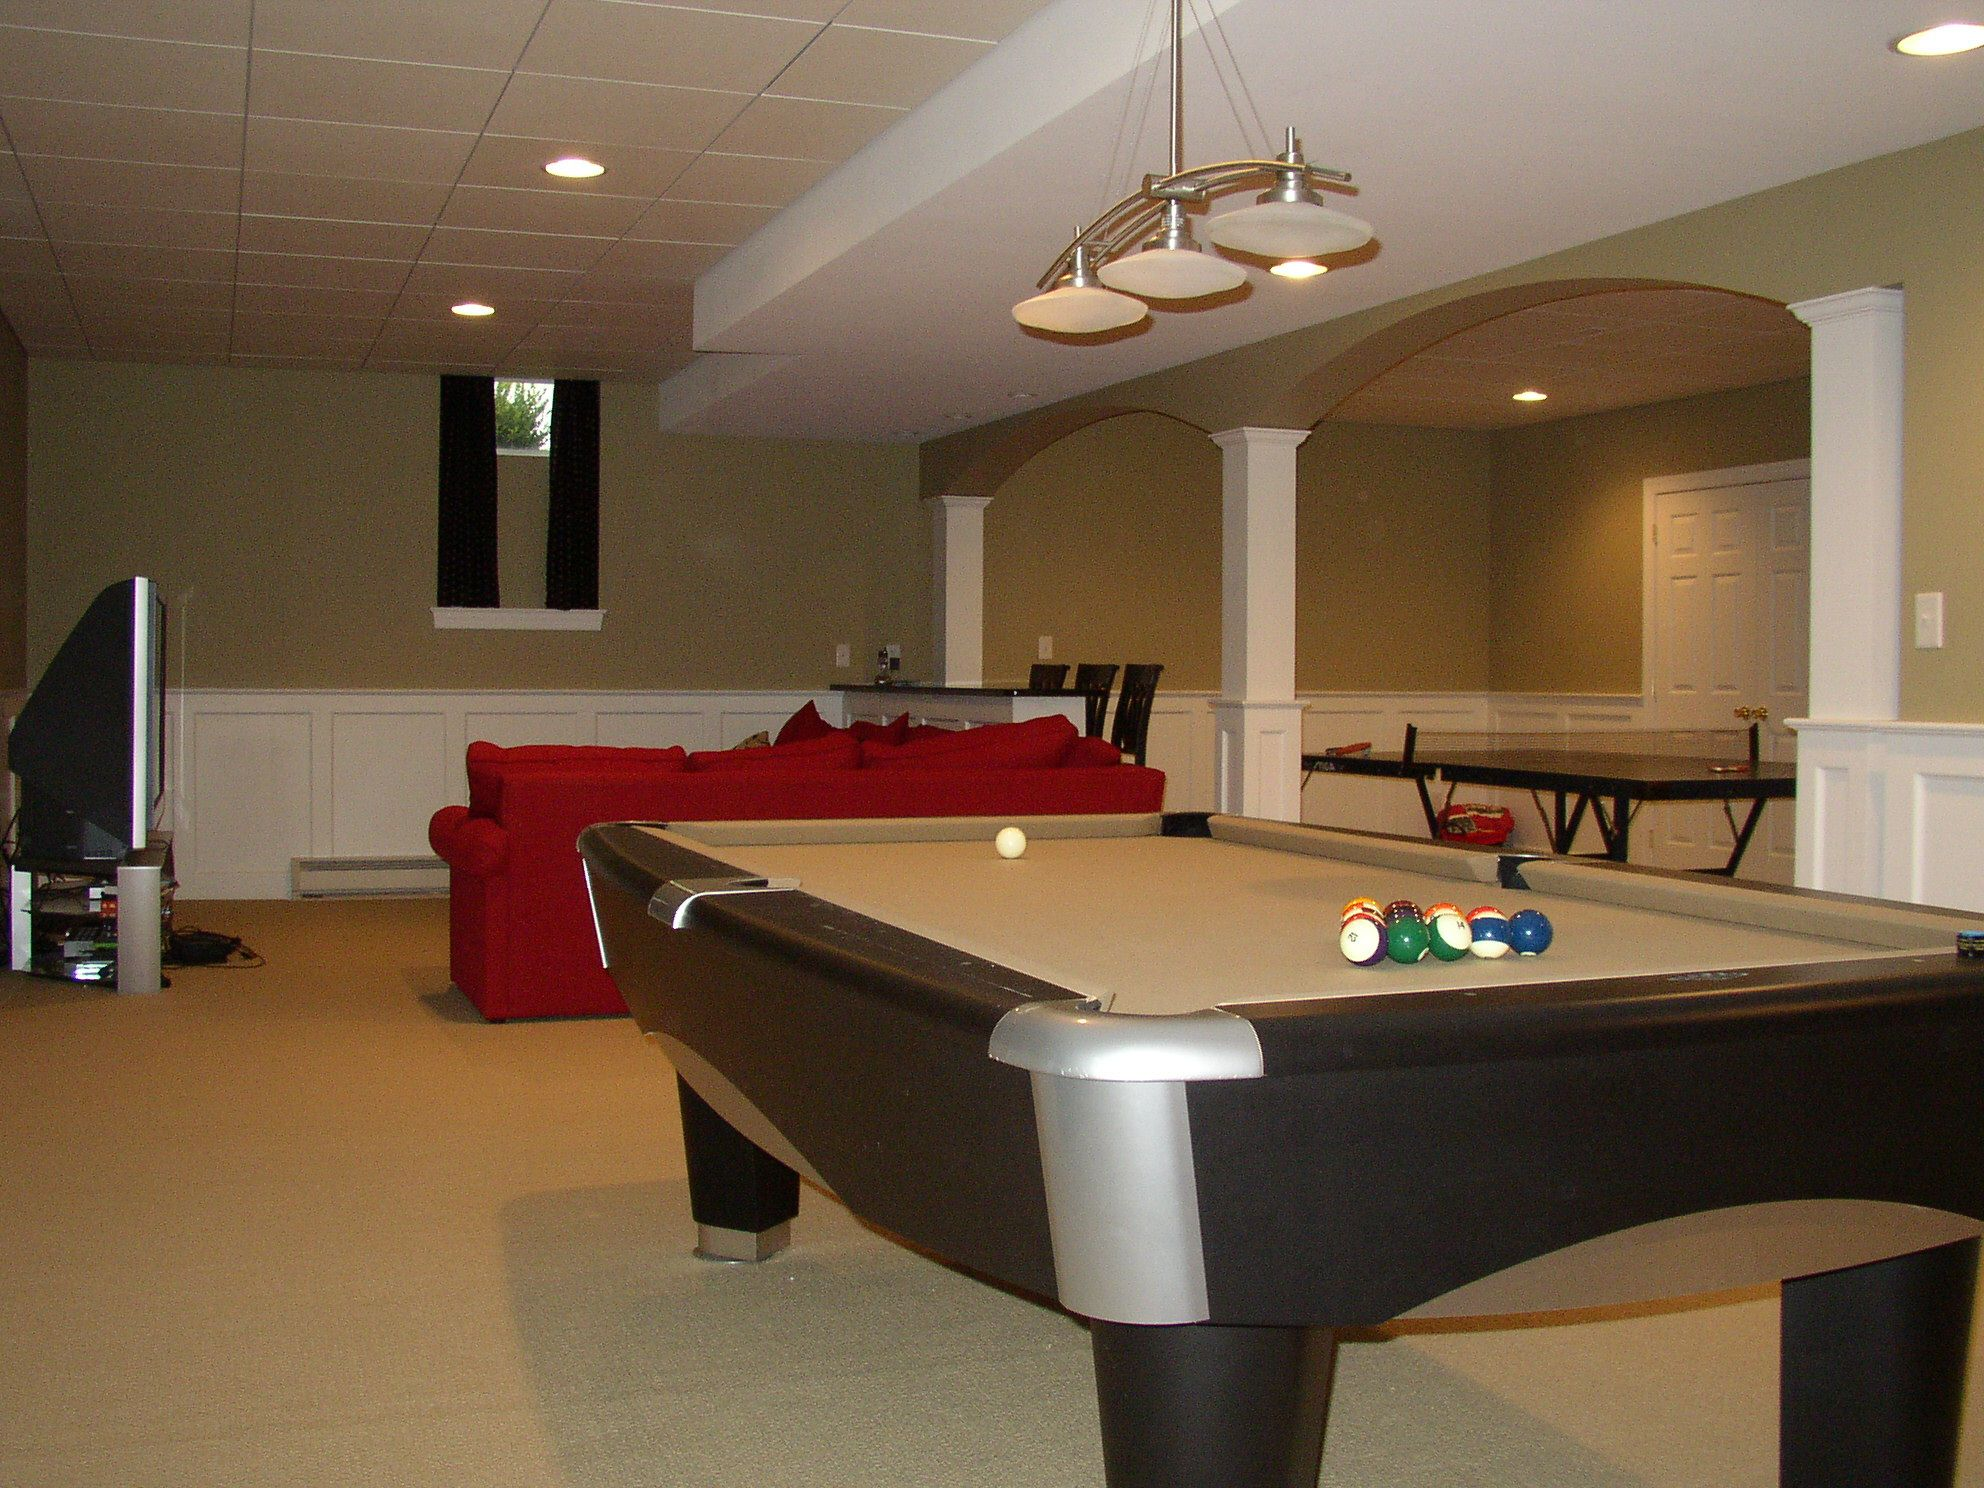 best images about finished basement ideas on pinterest beer finished basement ideas - Finished Basement Design Ideas